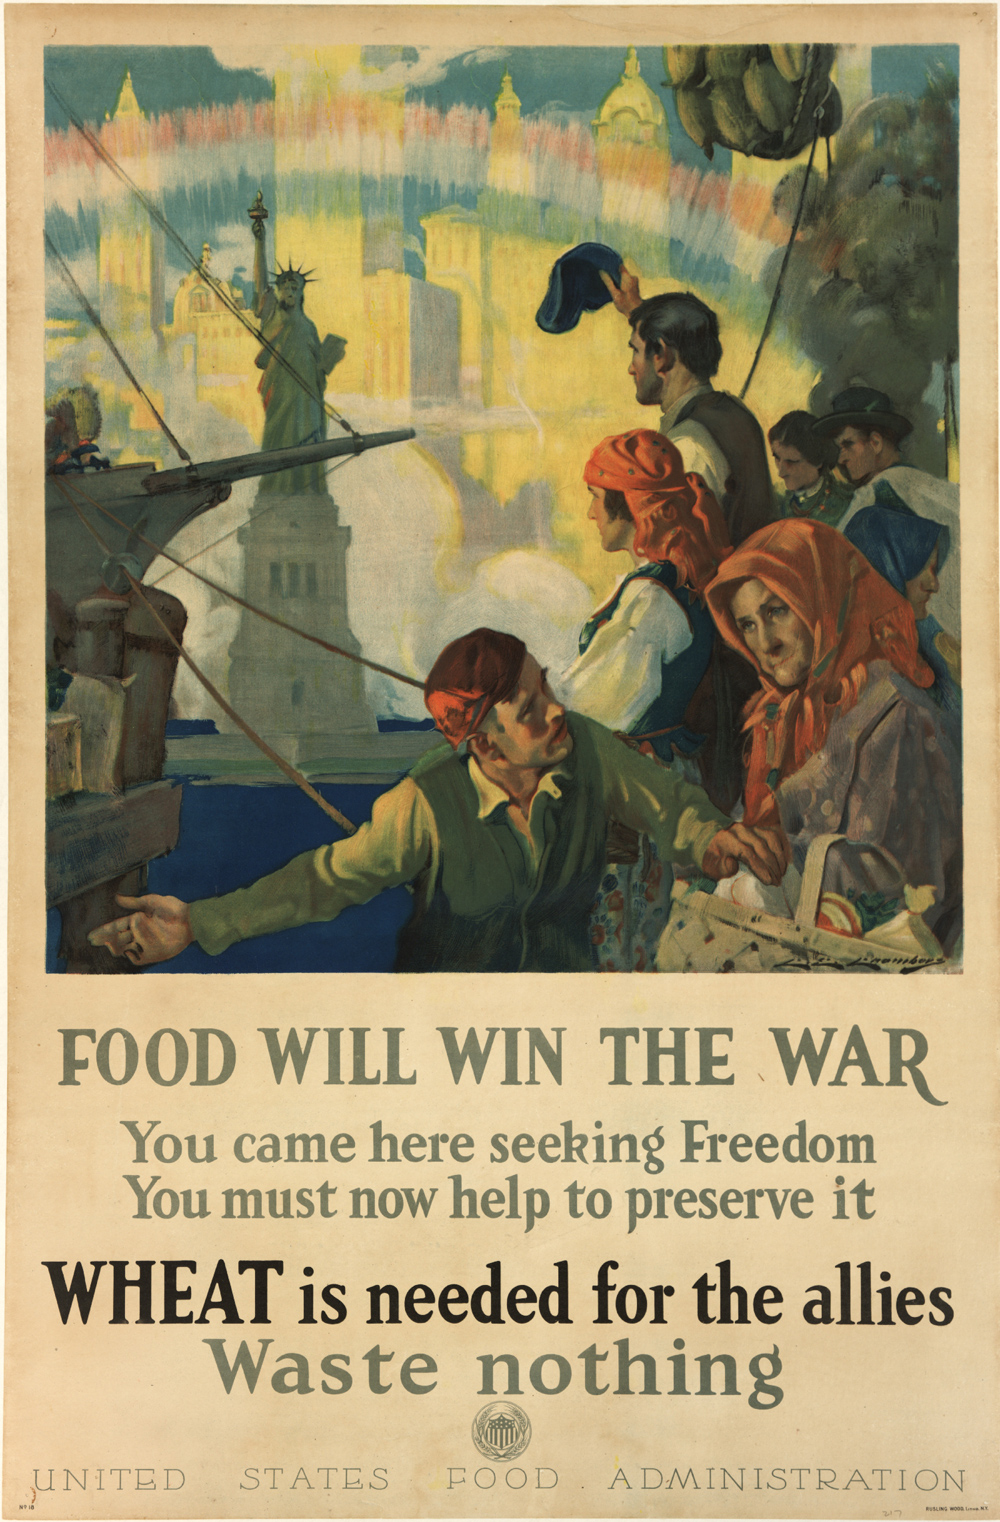 US Food Administration. Food Will Win the War, ca. 1917. (GLC09522)